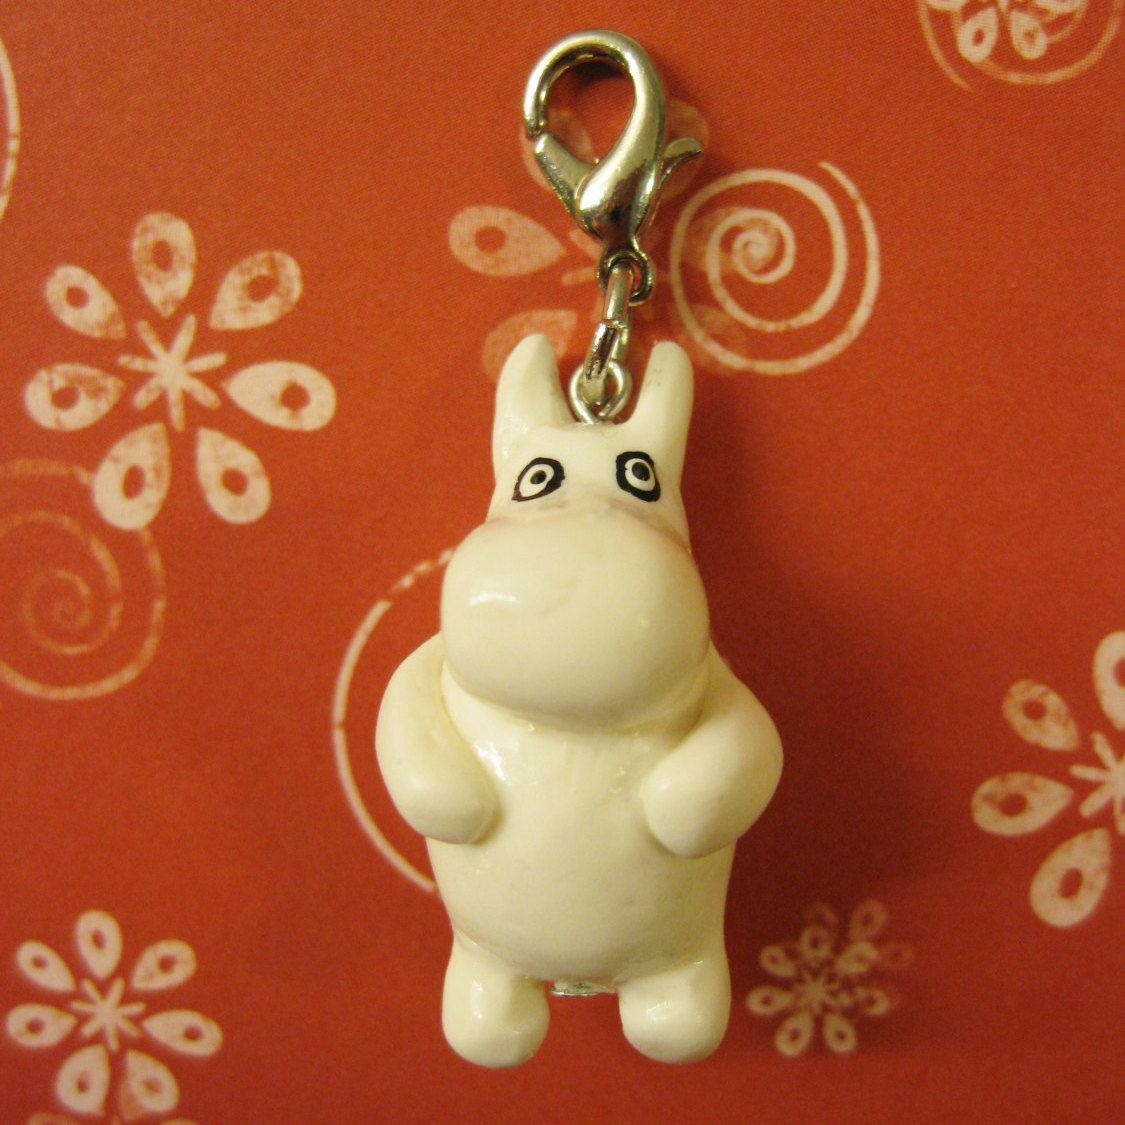 Polymer clay Finnish author Tove Jansson Moomin character charm by AnniCrafting on Etsy